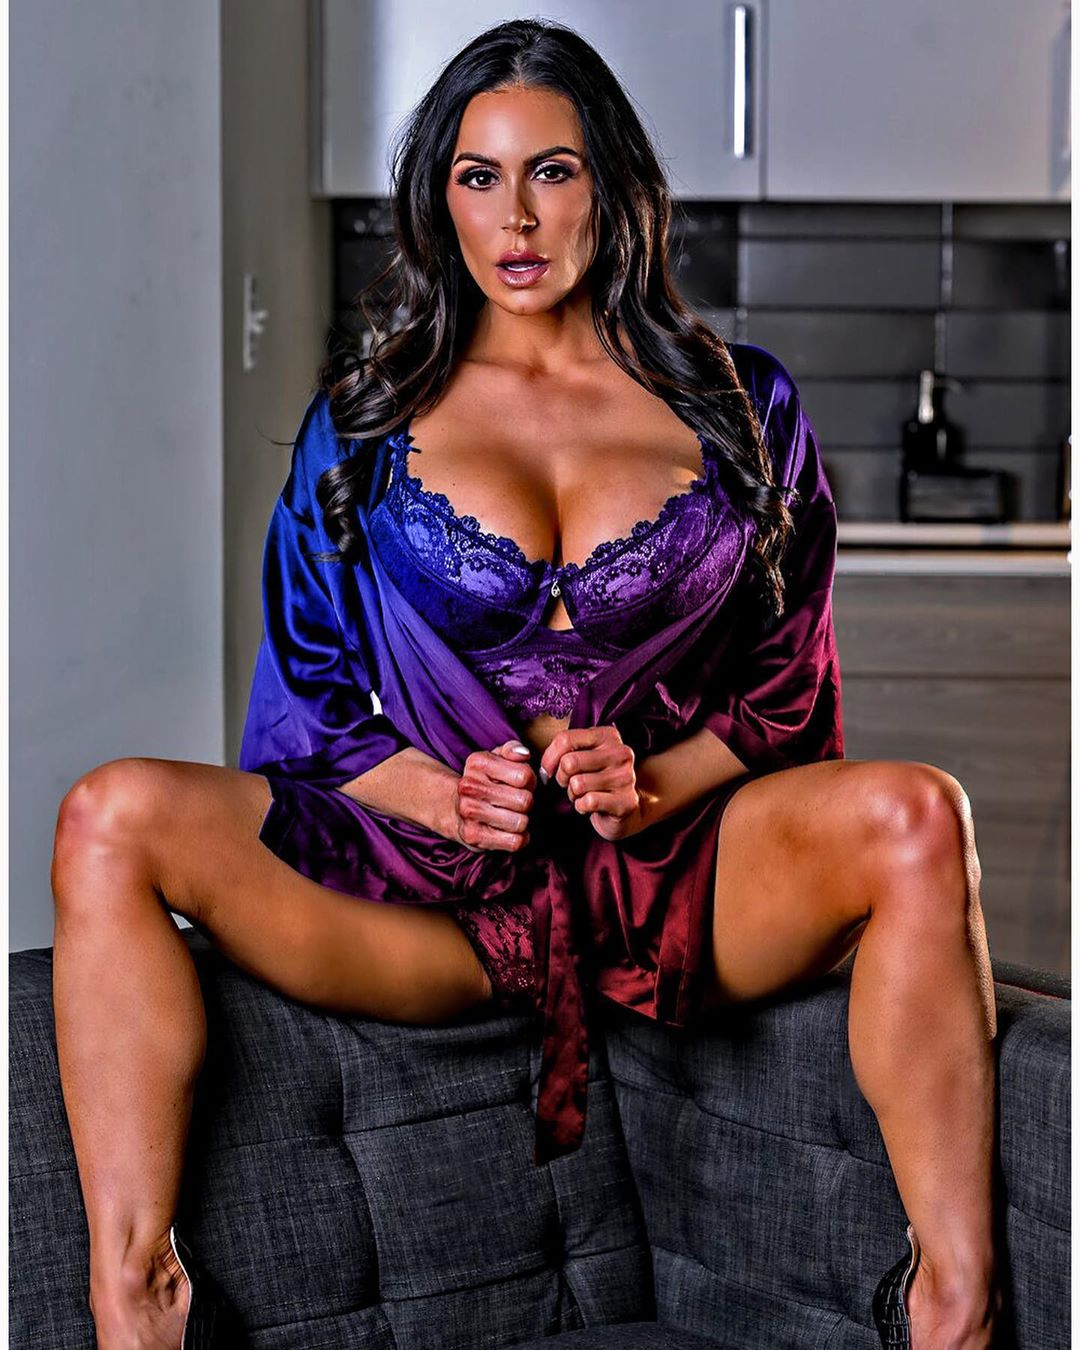 Kendra Lust Drops a Thirst Trap for Her Lions! - Photo 3